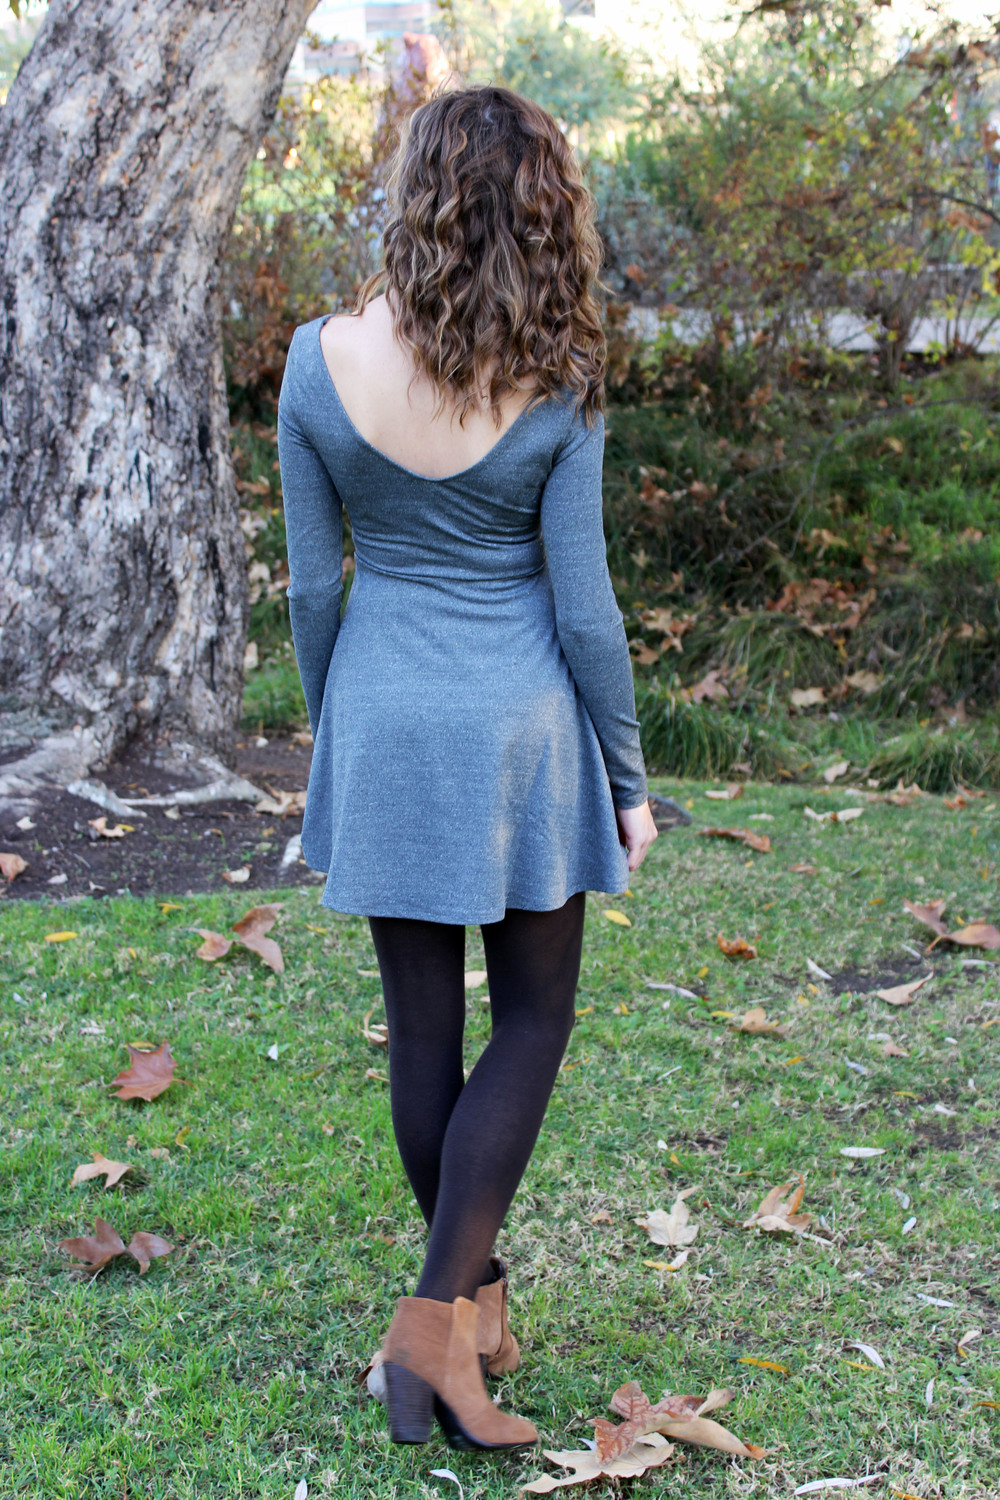 BASIC behinddress.jpg